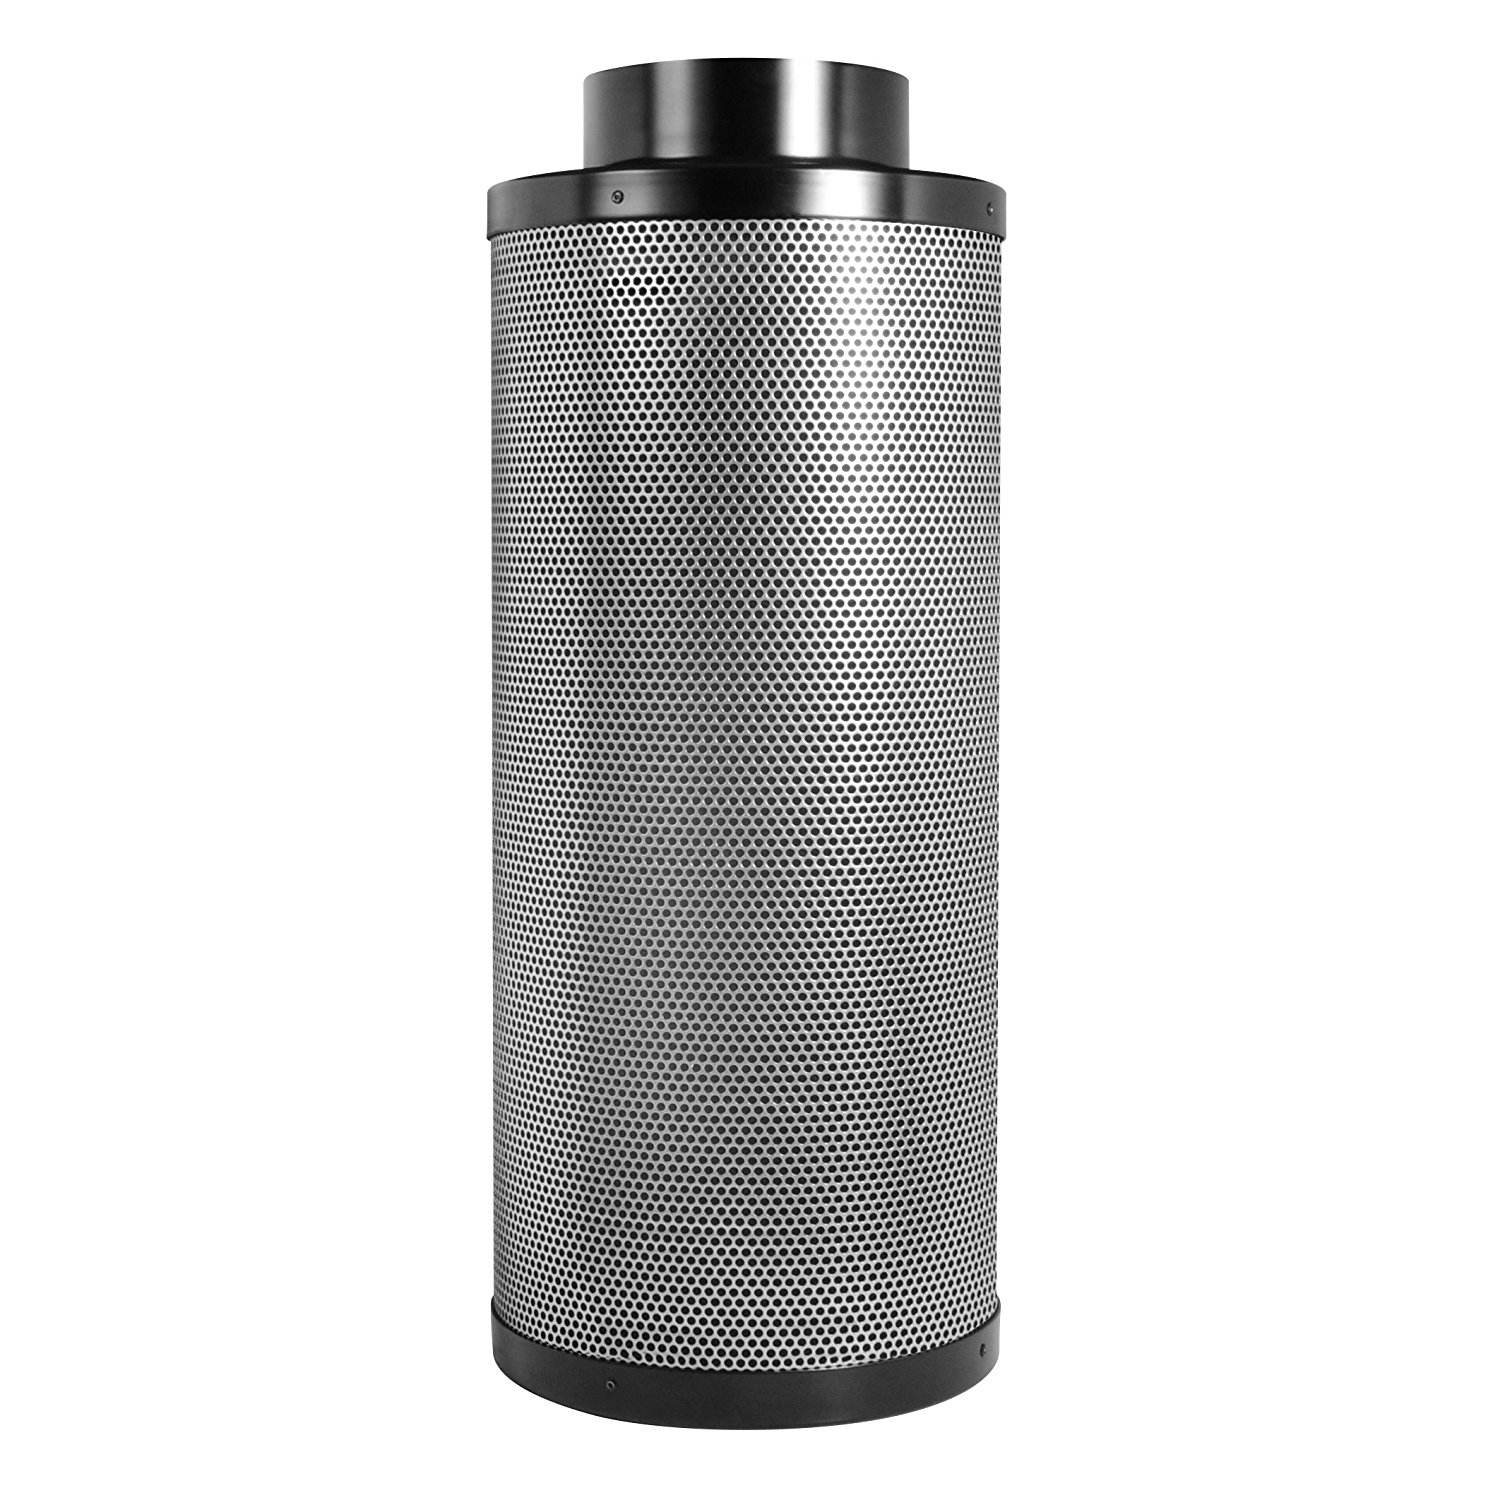 "Hydroponic 8"" Air Carbon Filter Virgin Charcoal Activated Charcoal Air Filter For Greenhouse"